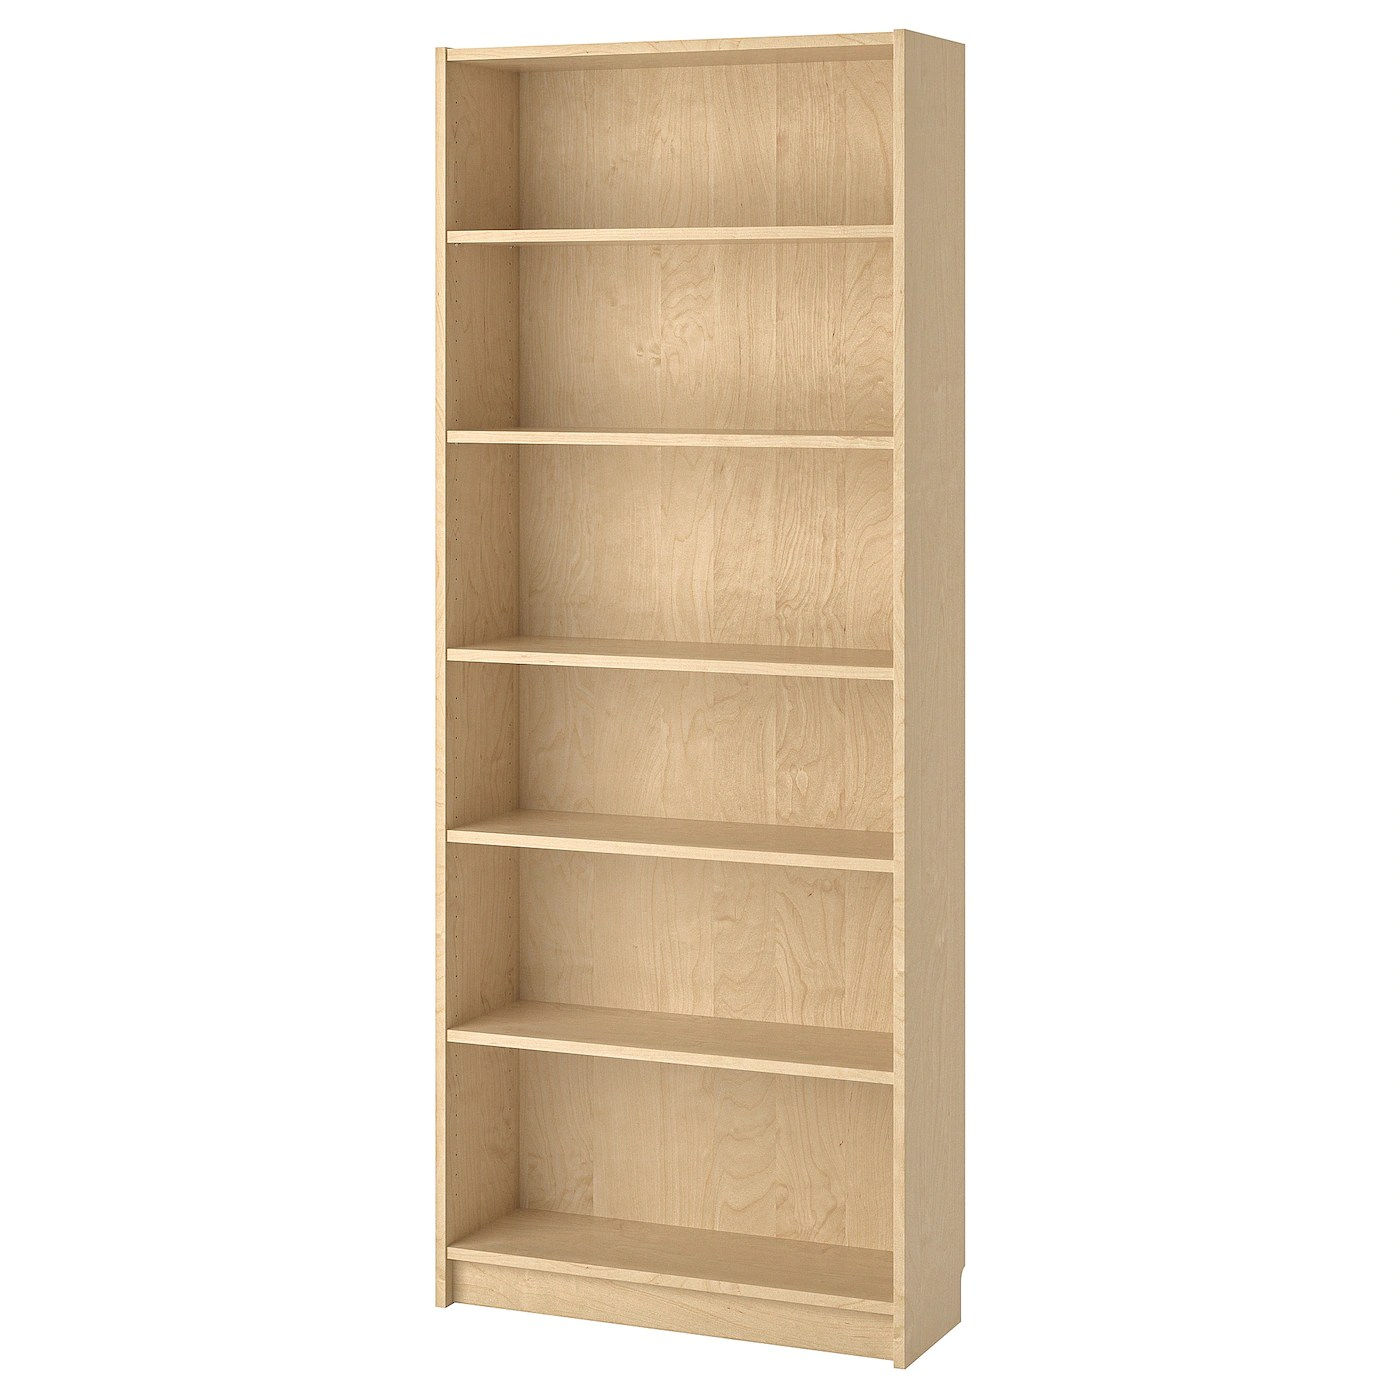 Regal Birke Billy Bücherregal, Birkenfurnier, 80x28x202 Cm - Ikea Deutschland